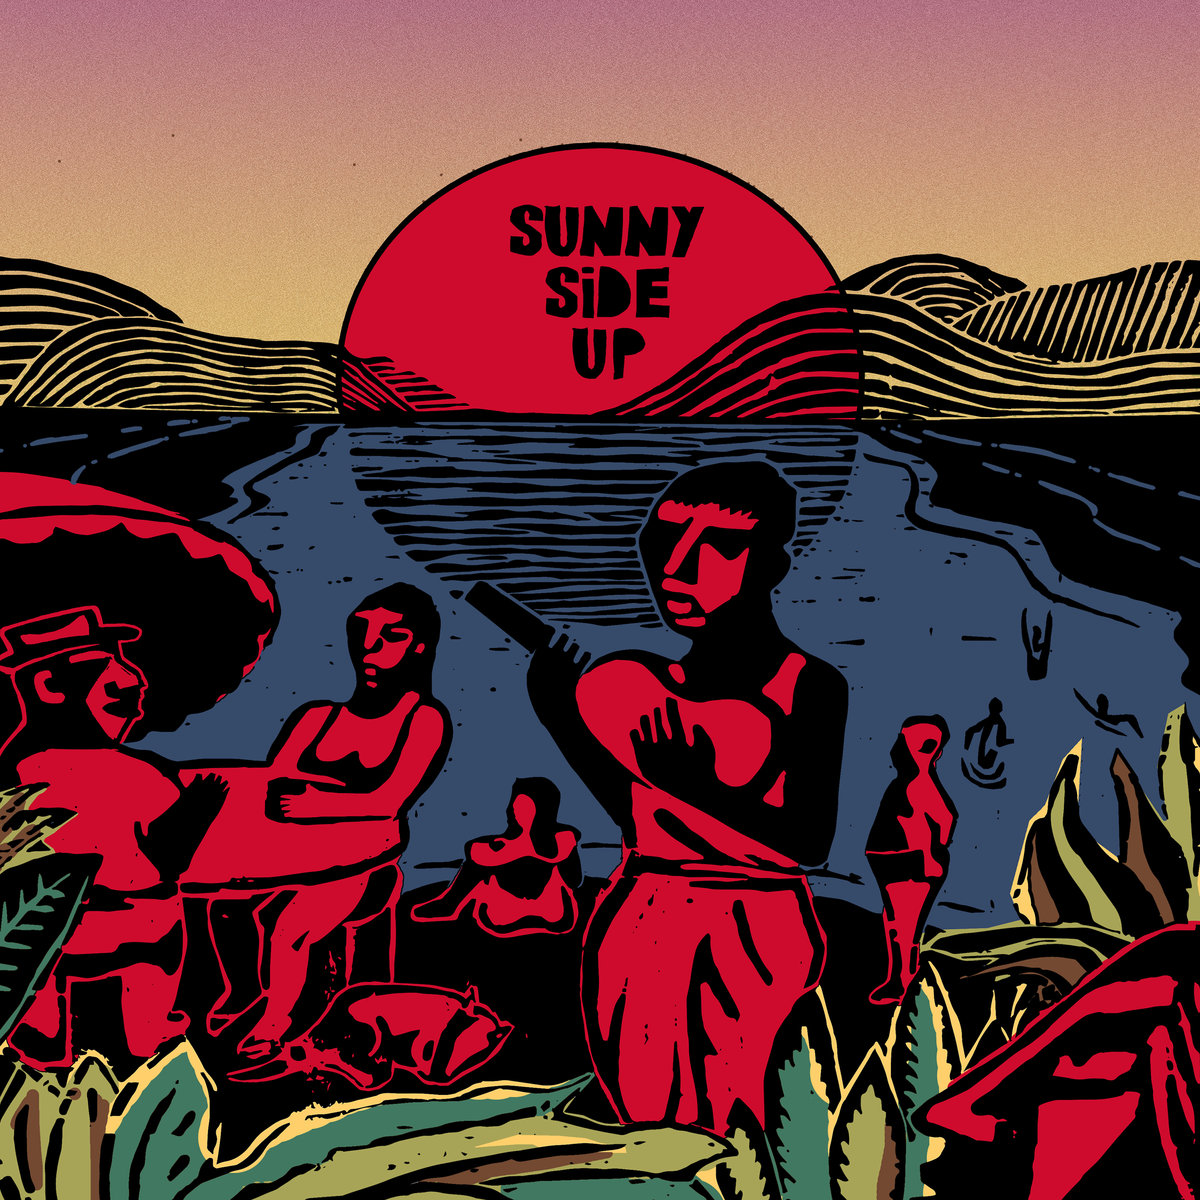 SUNNY SIDE UP - SUNNY SIDE UP-buythewax